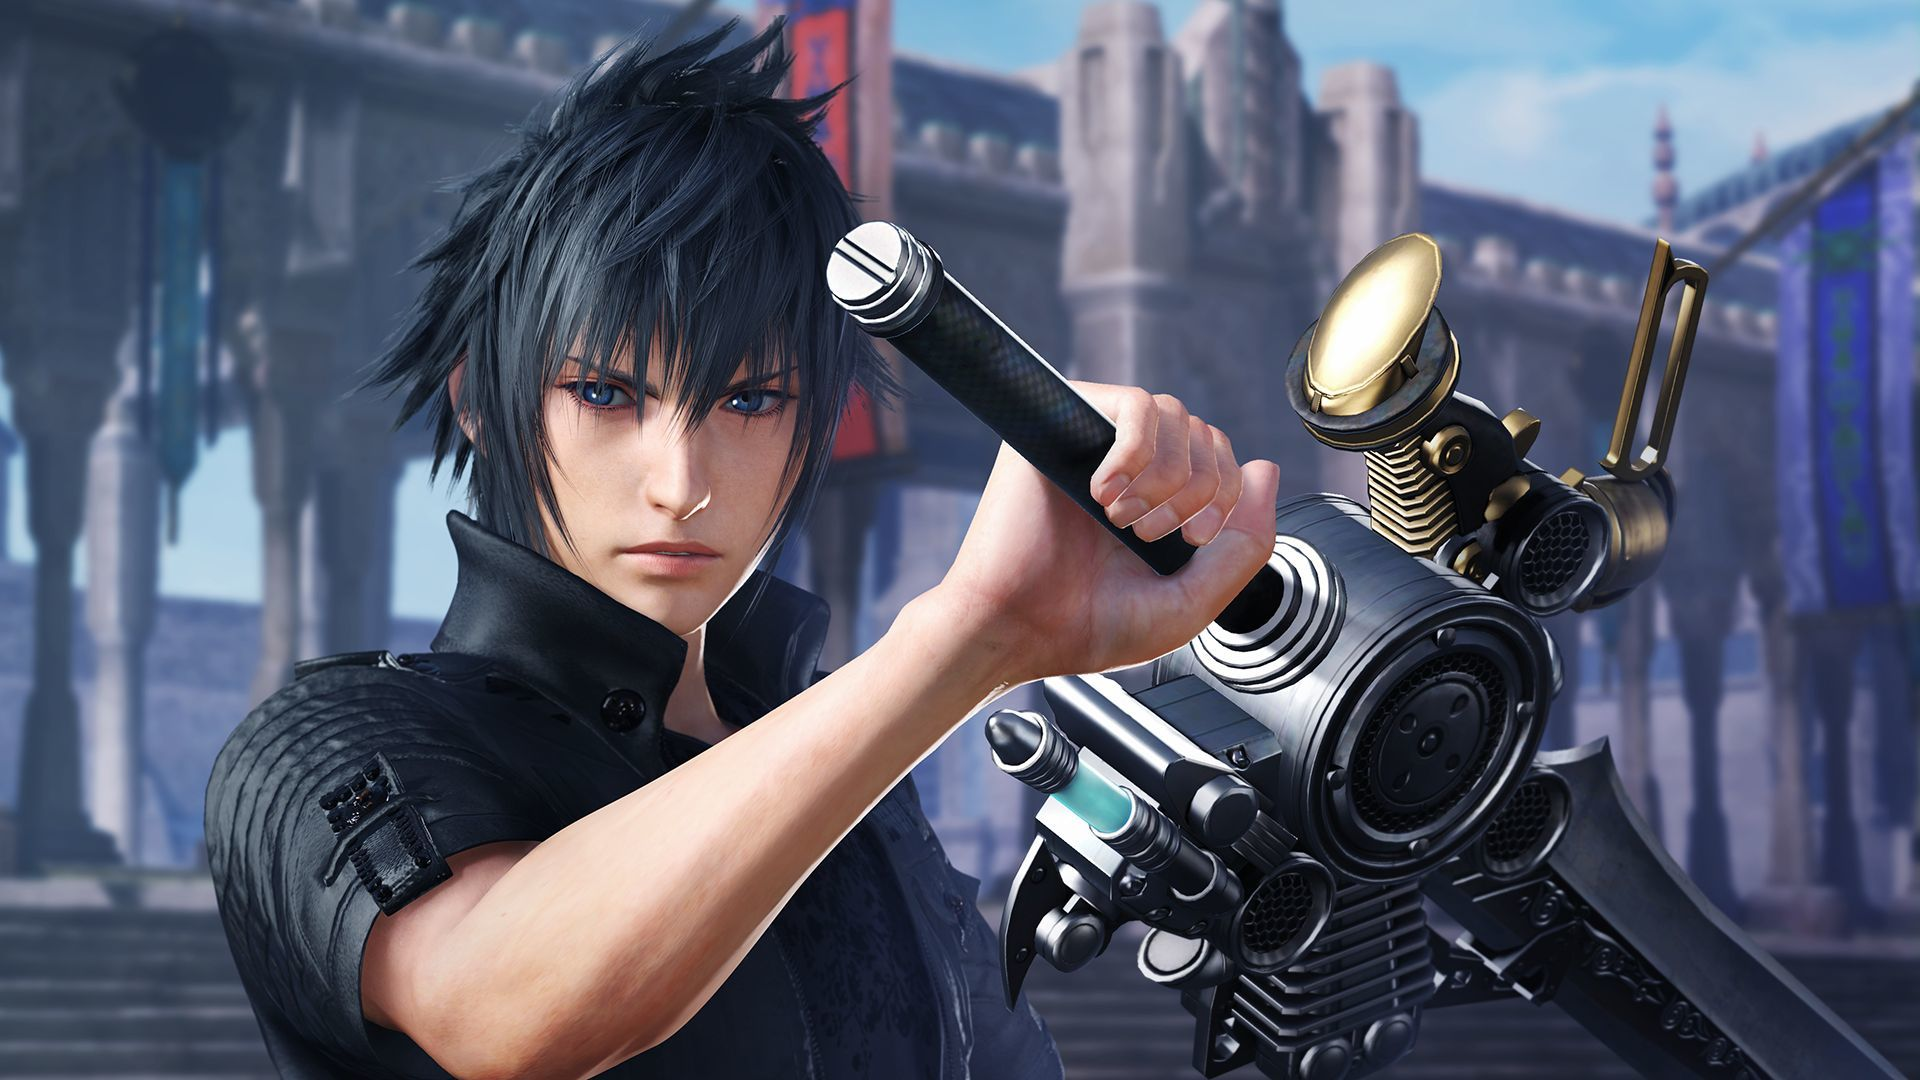 Noctis And Squall Leonhart Get Dissidia Trailers Dissidia